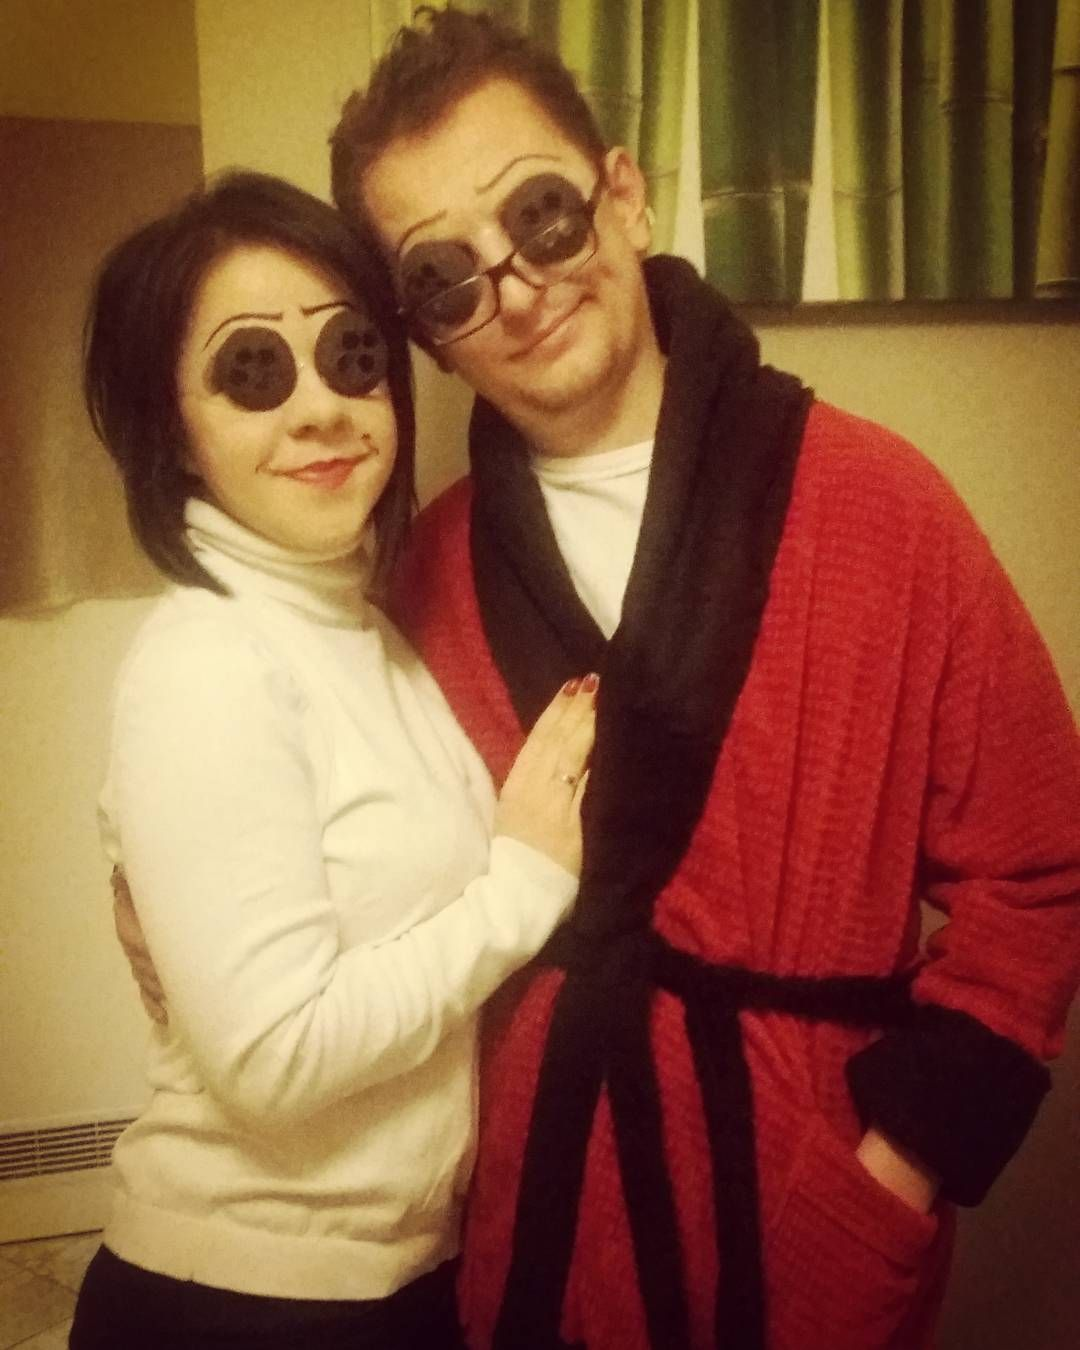 Creat Your Own Couples Costumes For Halloween Discover The Best Diy Costume Ideas Inspirations In 2020 Diy Couples Costumes Clever Couple Costumes Couples Costumes